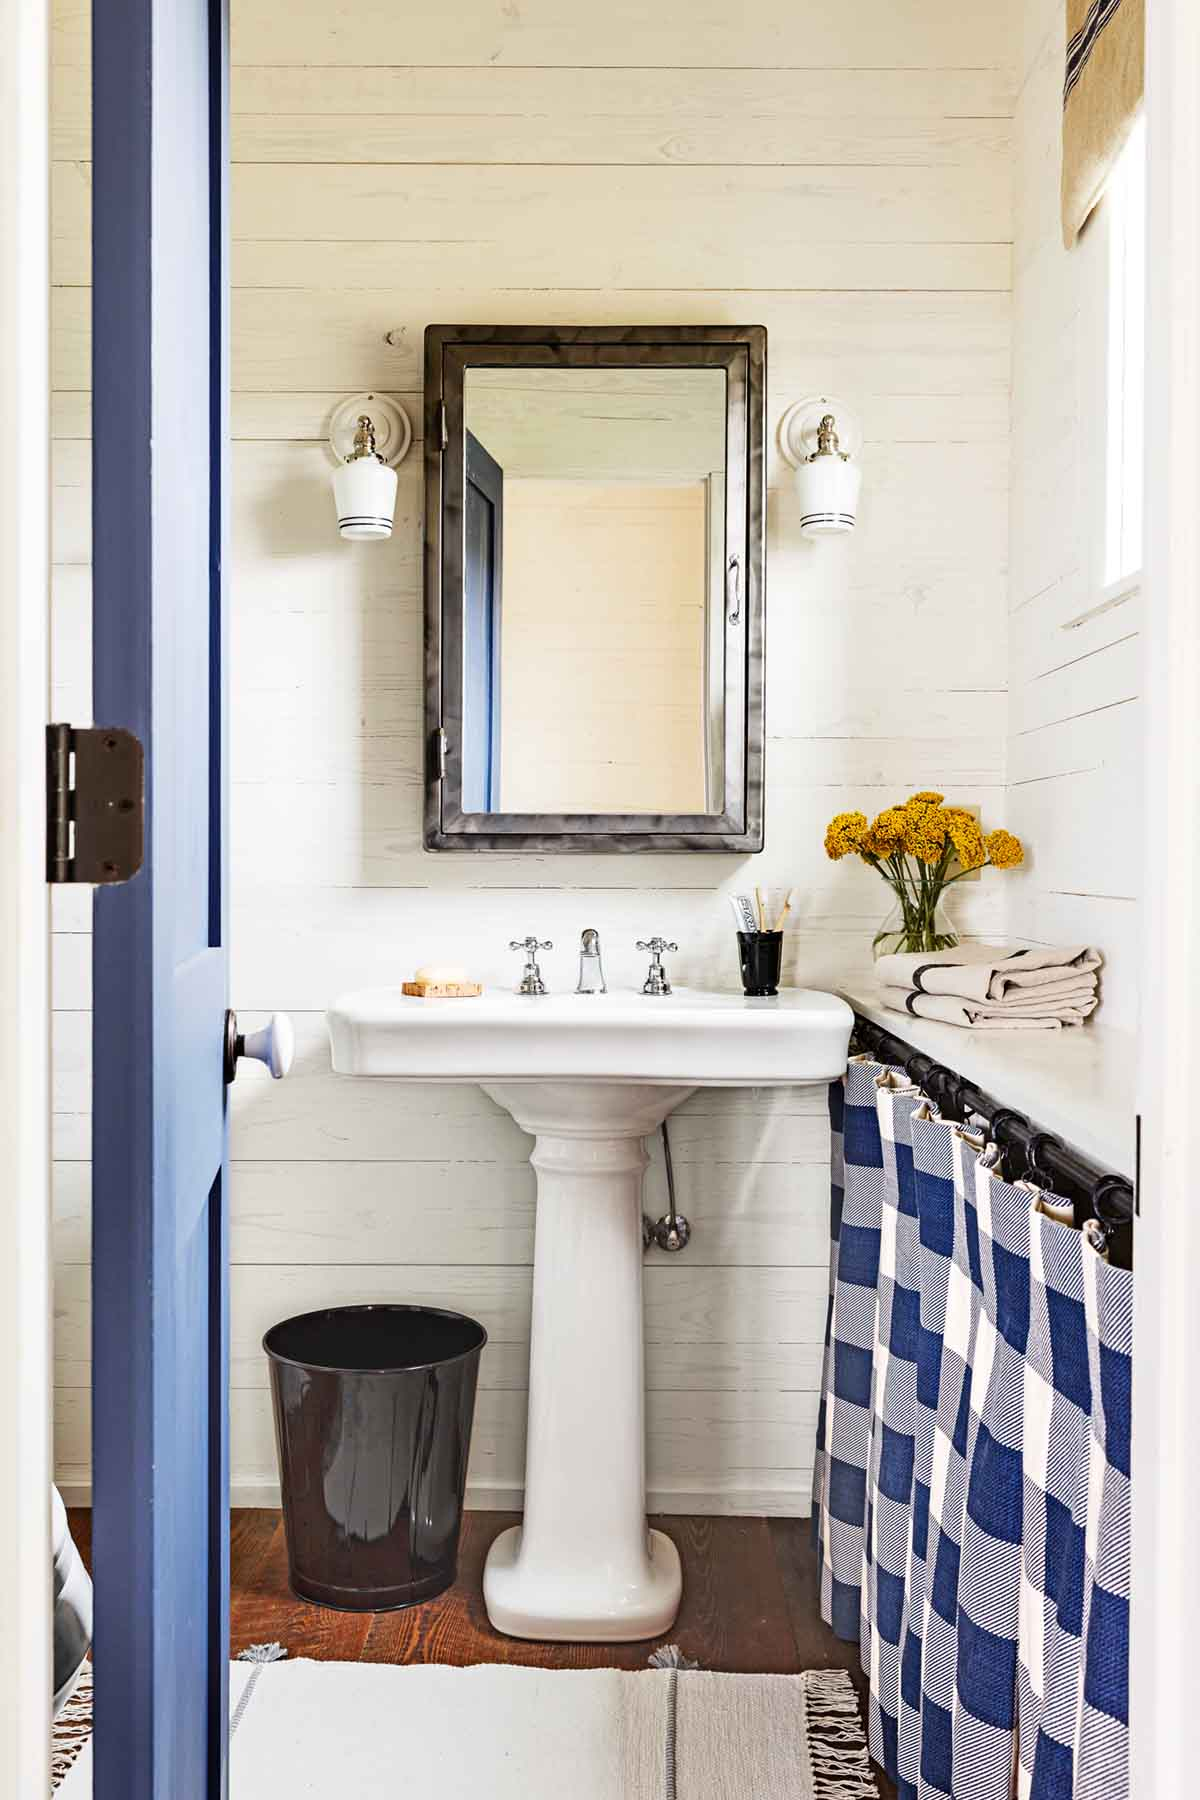 34 rustic bathroom decor ideas rustic modern bathroom Rustic country style bathrooms